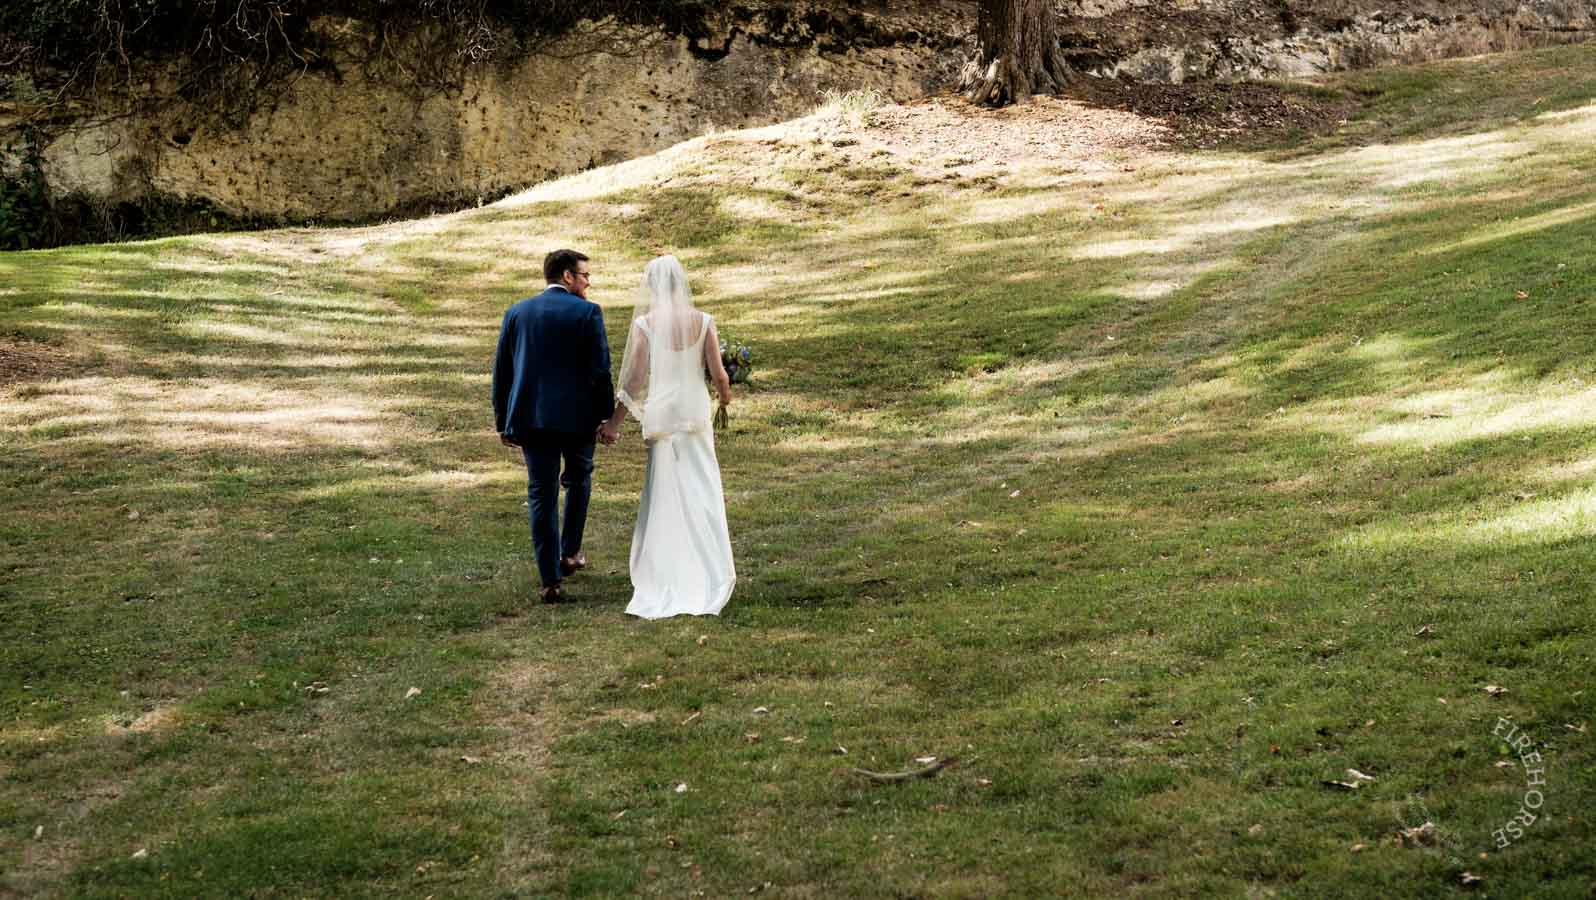 Lot-et-Garonne-Wedding-Photography-239